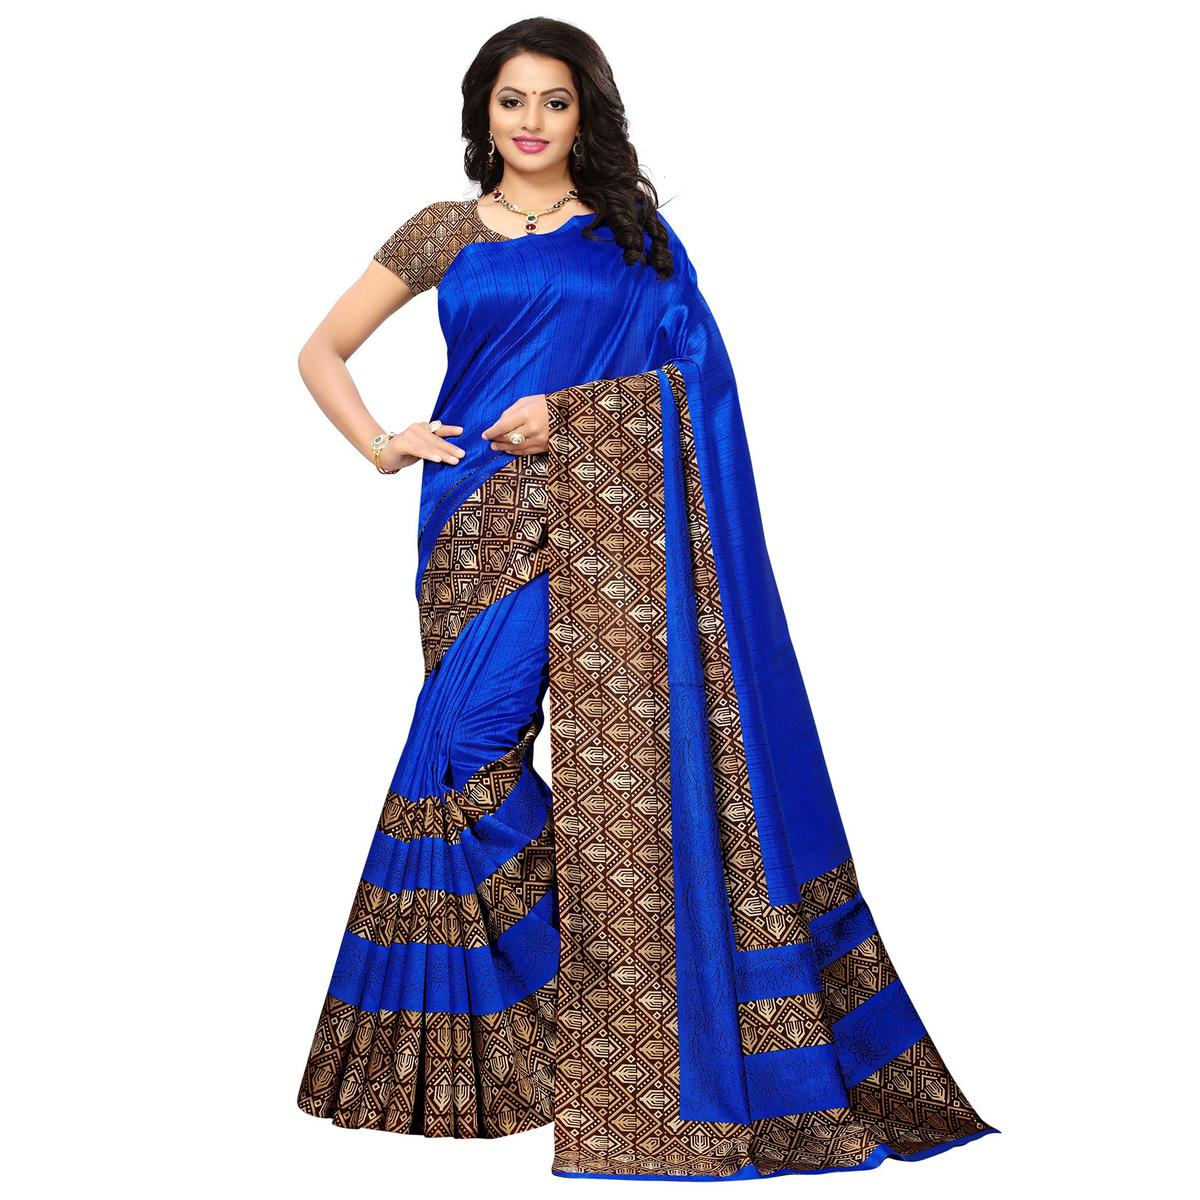 Mesmerising Blue Colored Printed Festive Wear Mysore Art Silk Saree